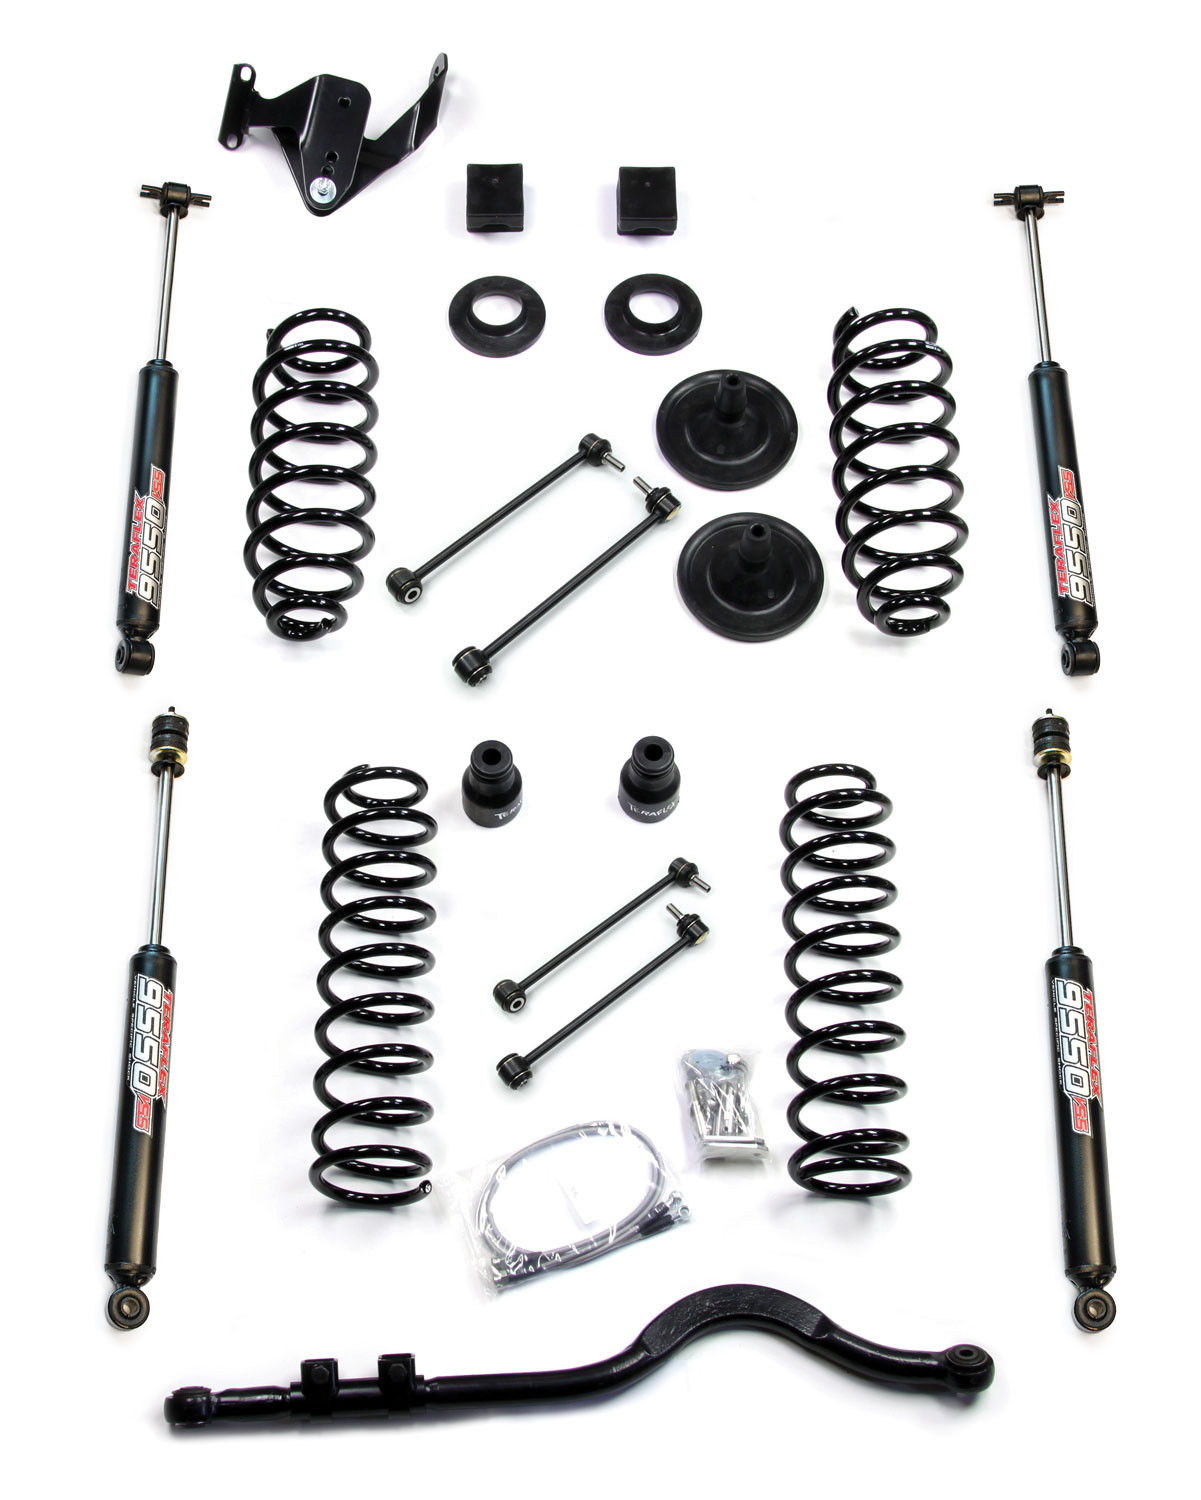 Just Jeeps Teraflex 3 Suspension Lift Kit With Trackbar Amp Shocks For 18 Jeep Wrangler